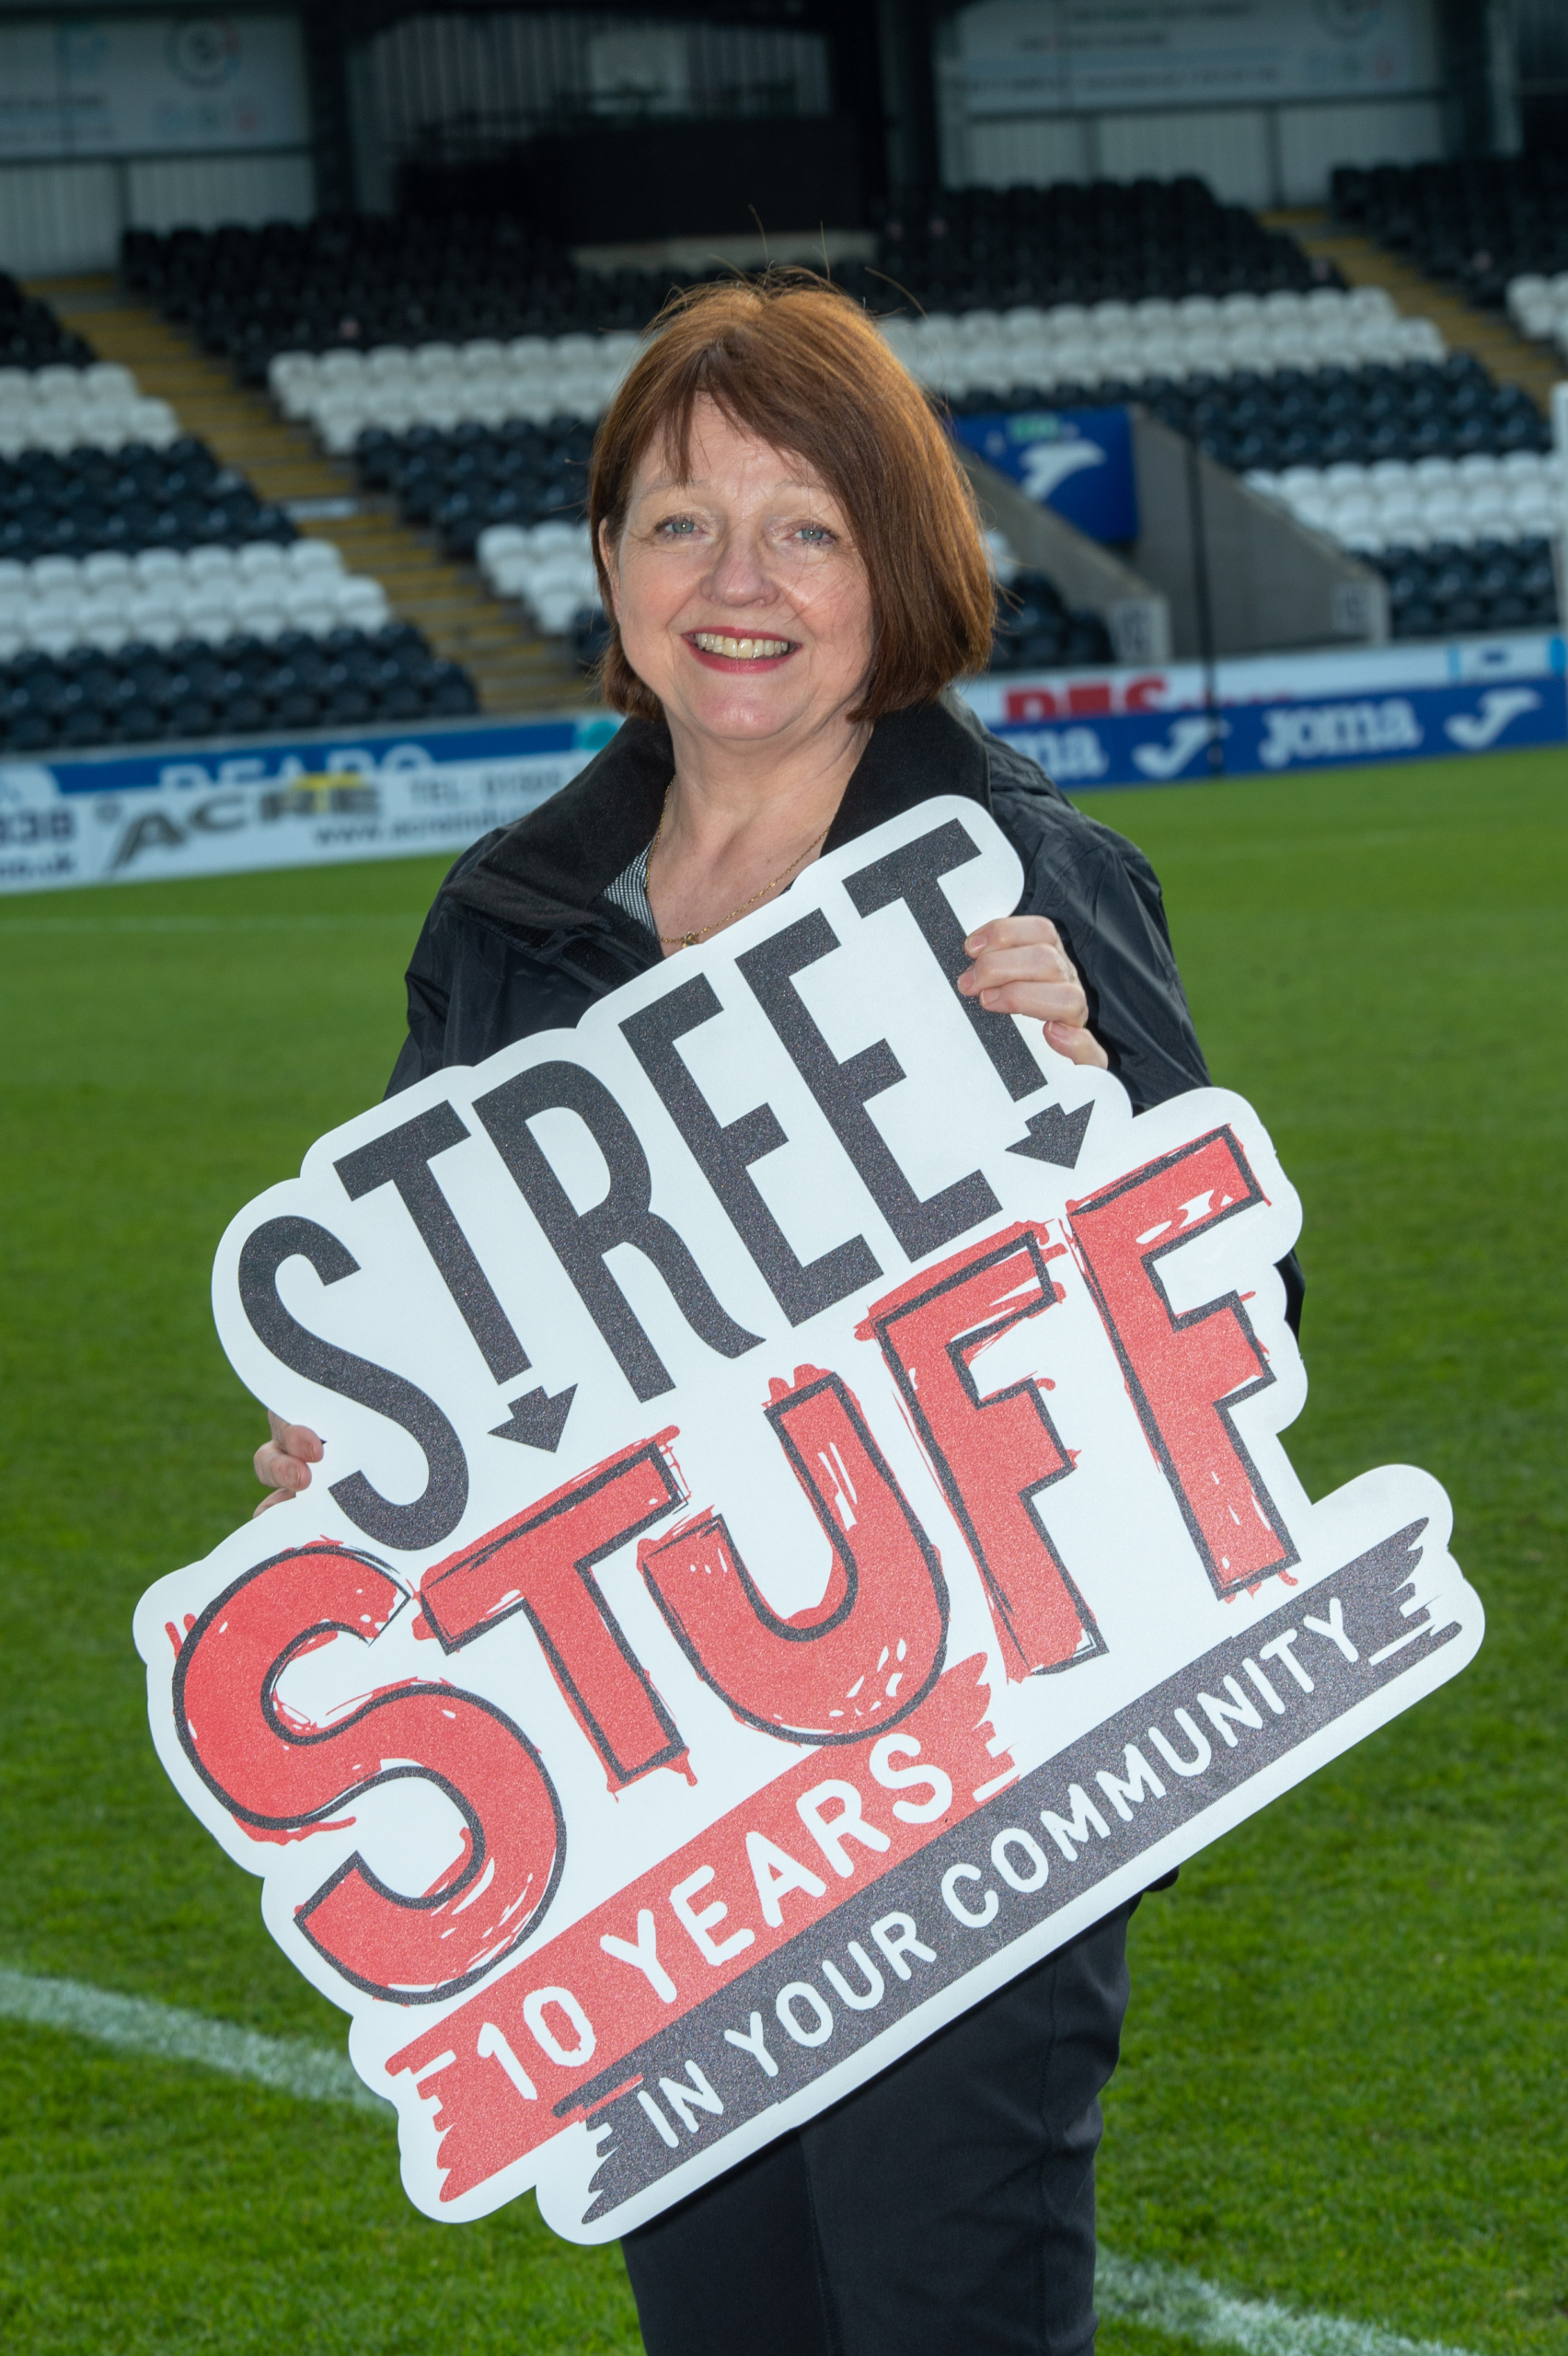 Councillor Marie McGurk - Convener of Communities, Housing and Planning Policy Board